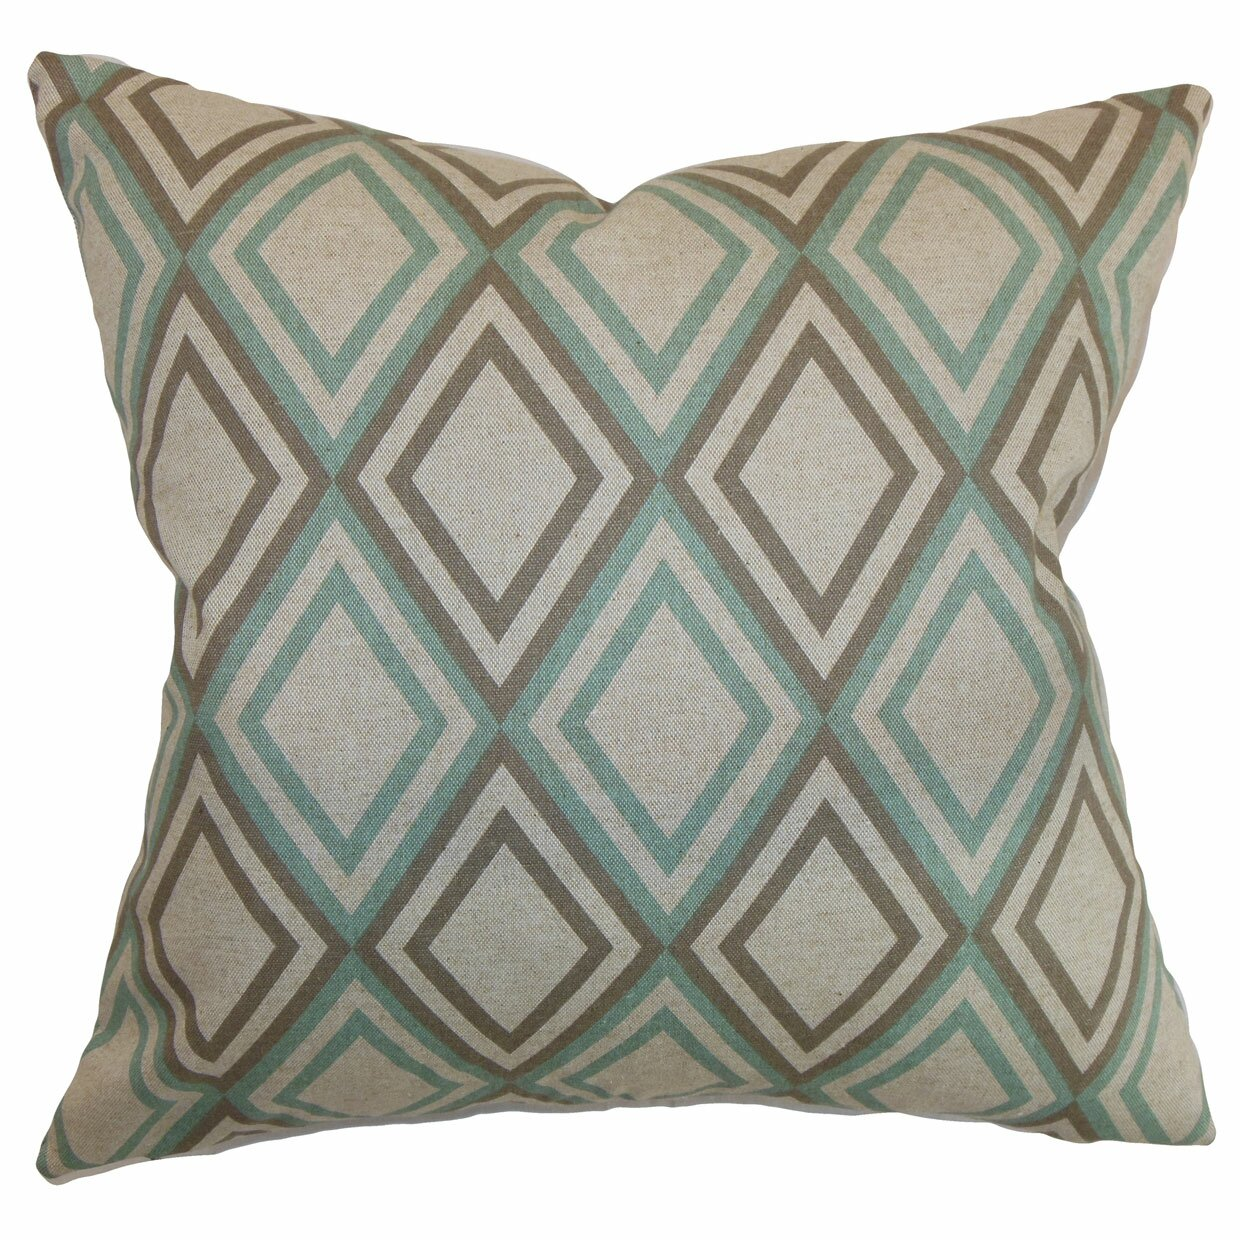 Throw Pillow Gallery : Varick Gallery Elmore Geometric Cotton Throw Pillow & Reviews Wayfair